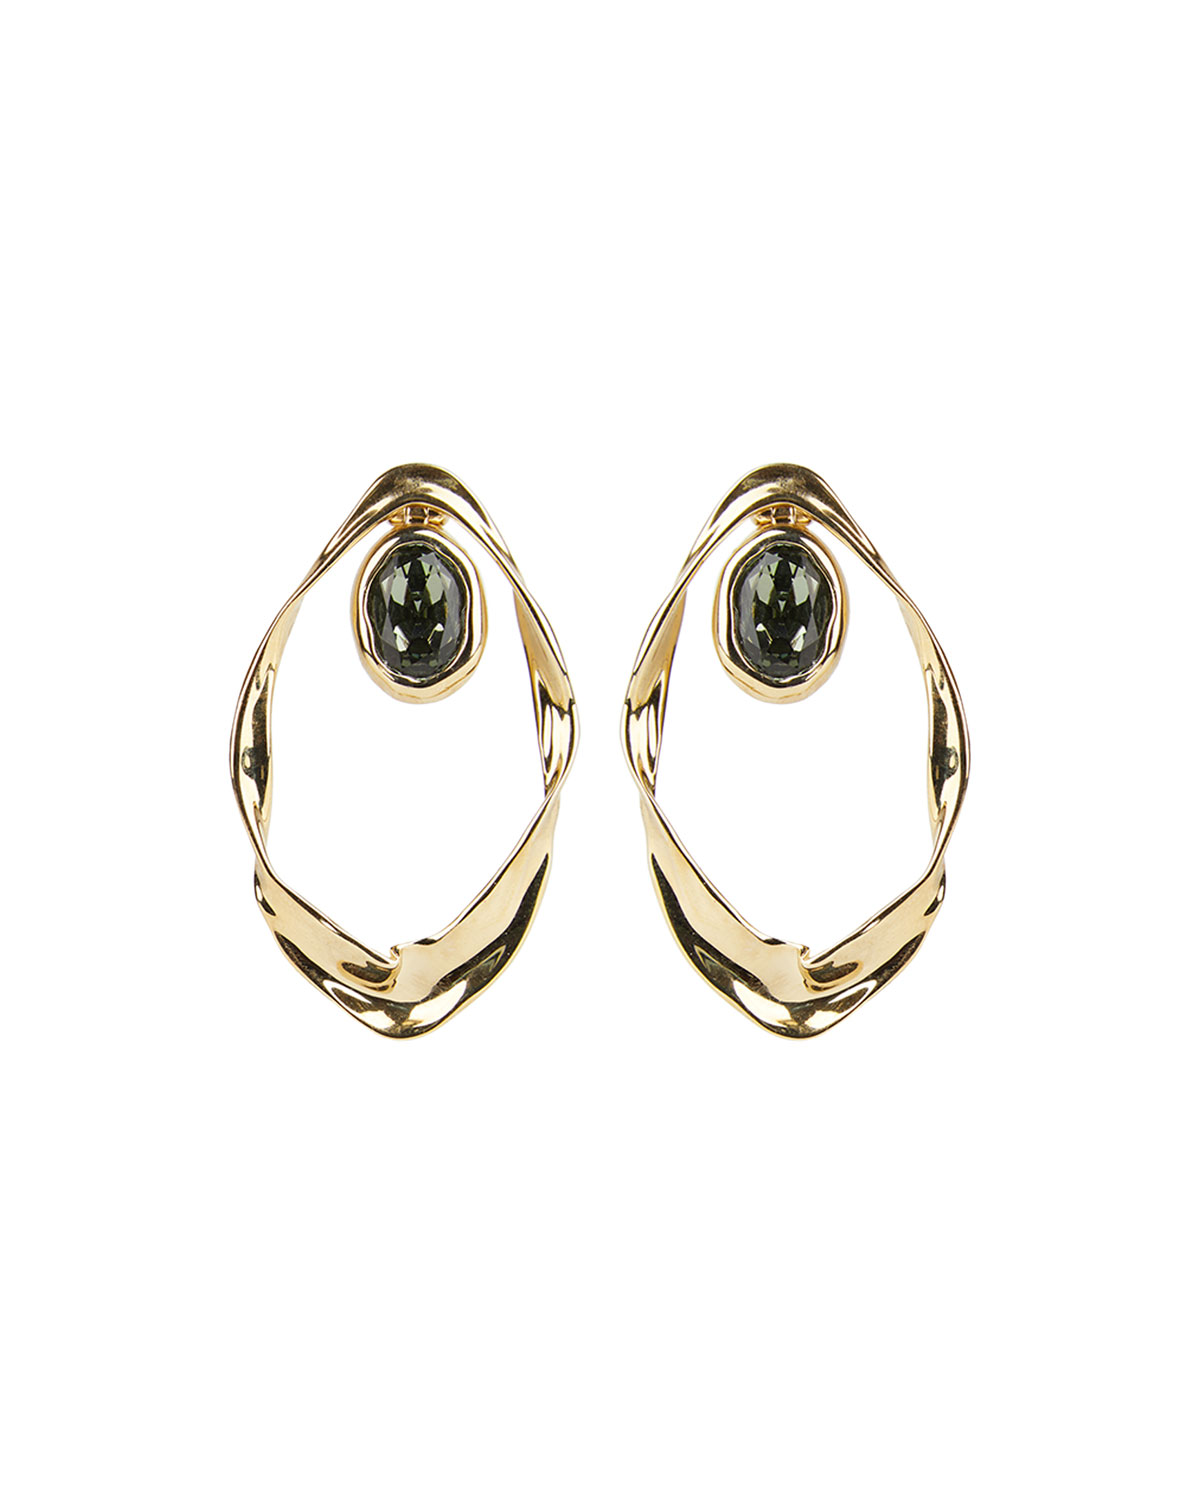 Alexis Bittar Crumpled Orbit Stone Post Earrings